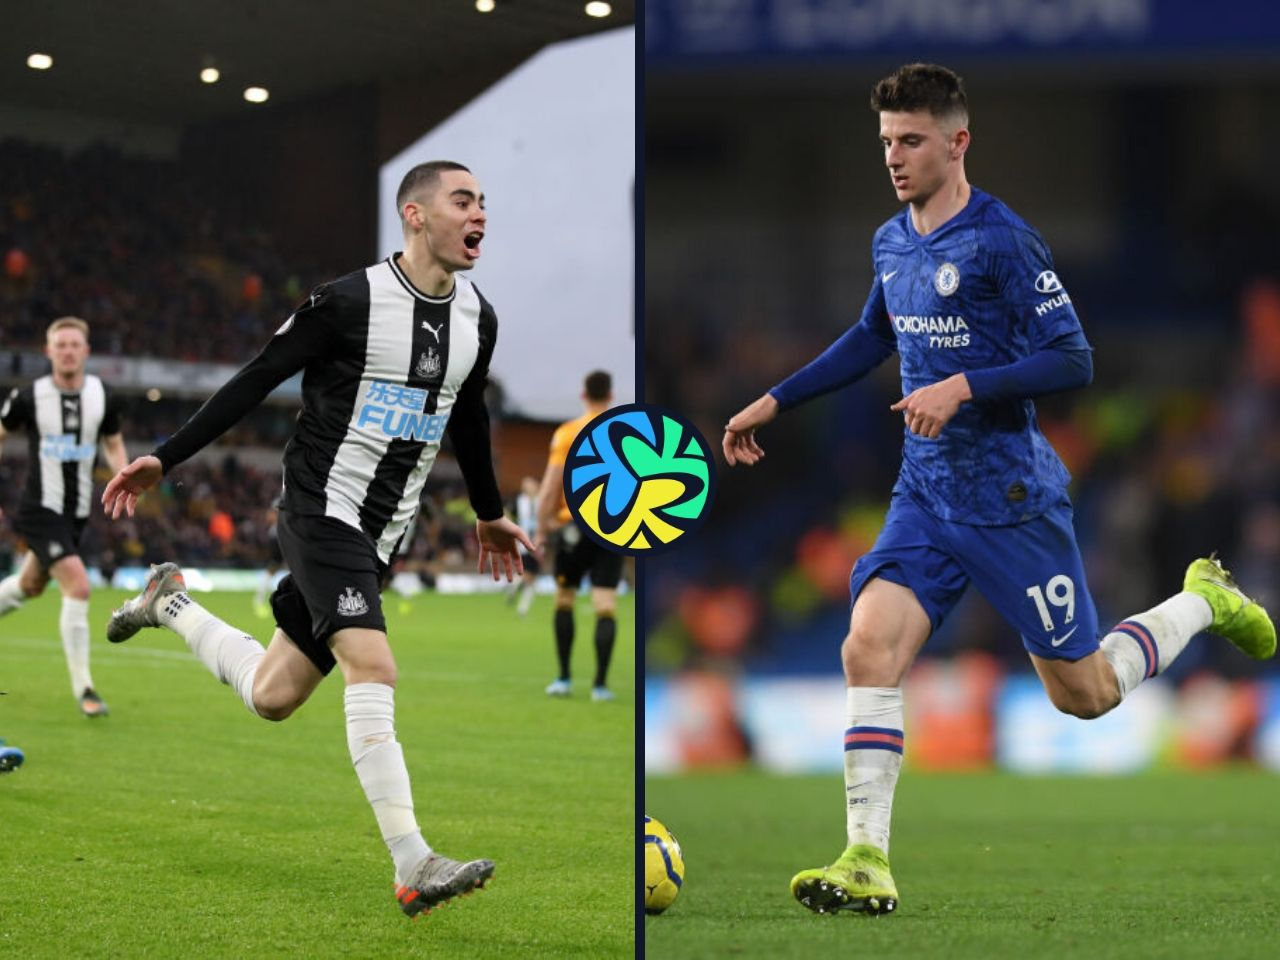 Preview Newcastle United Vs Chelsea Ronaldo com